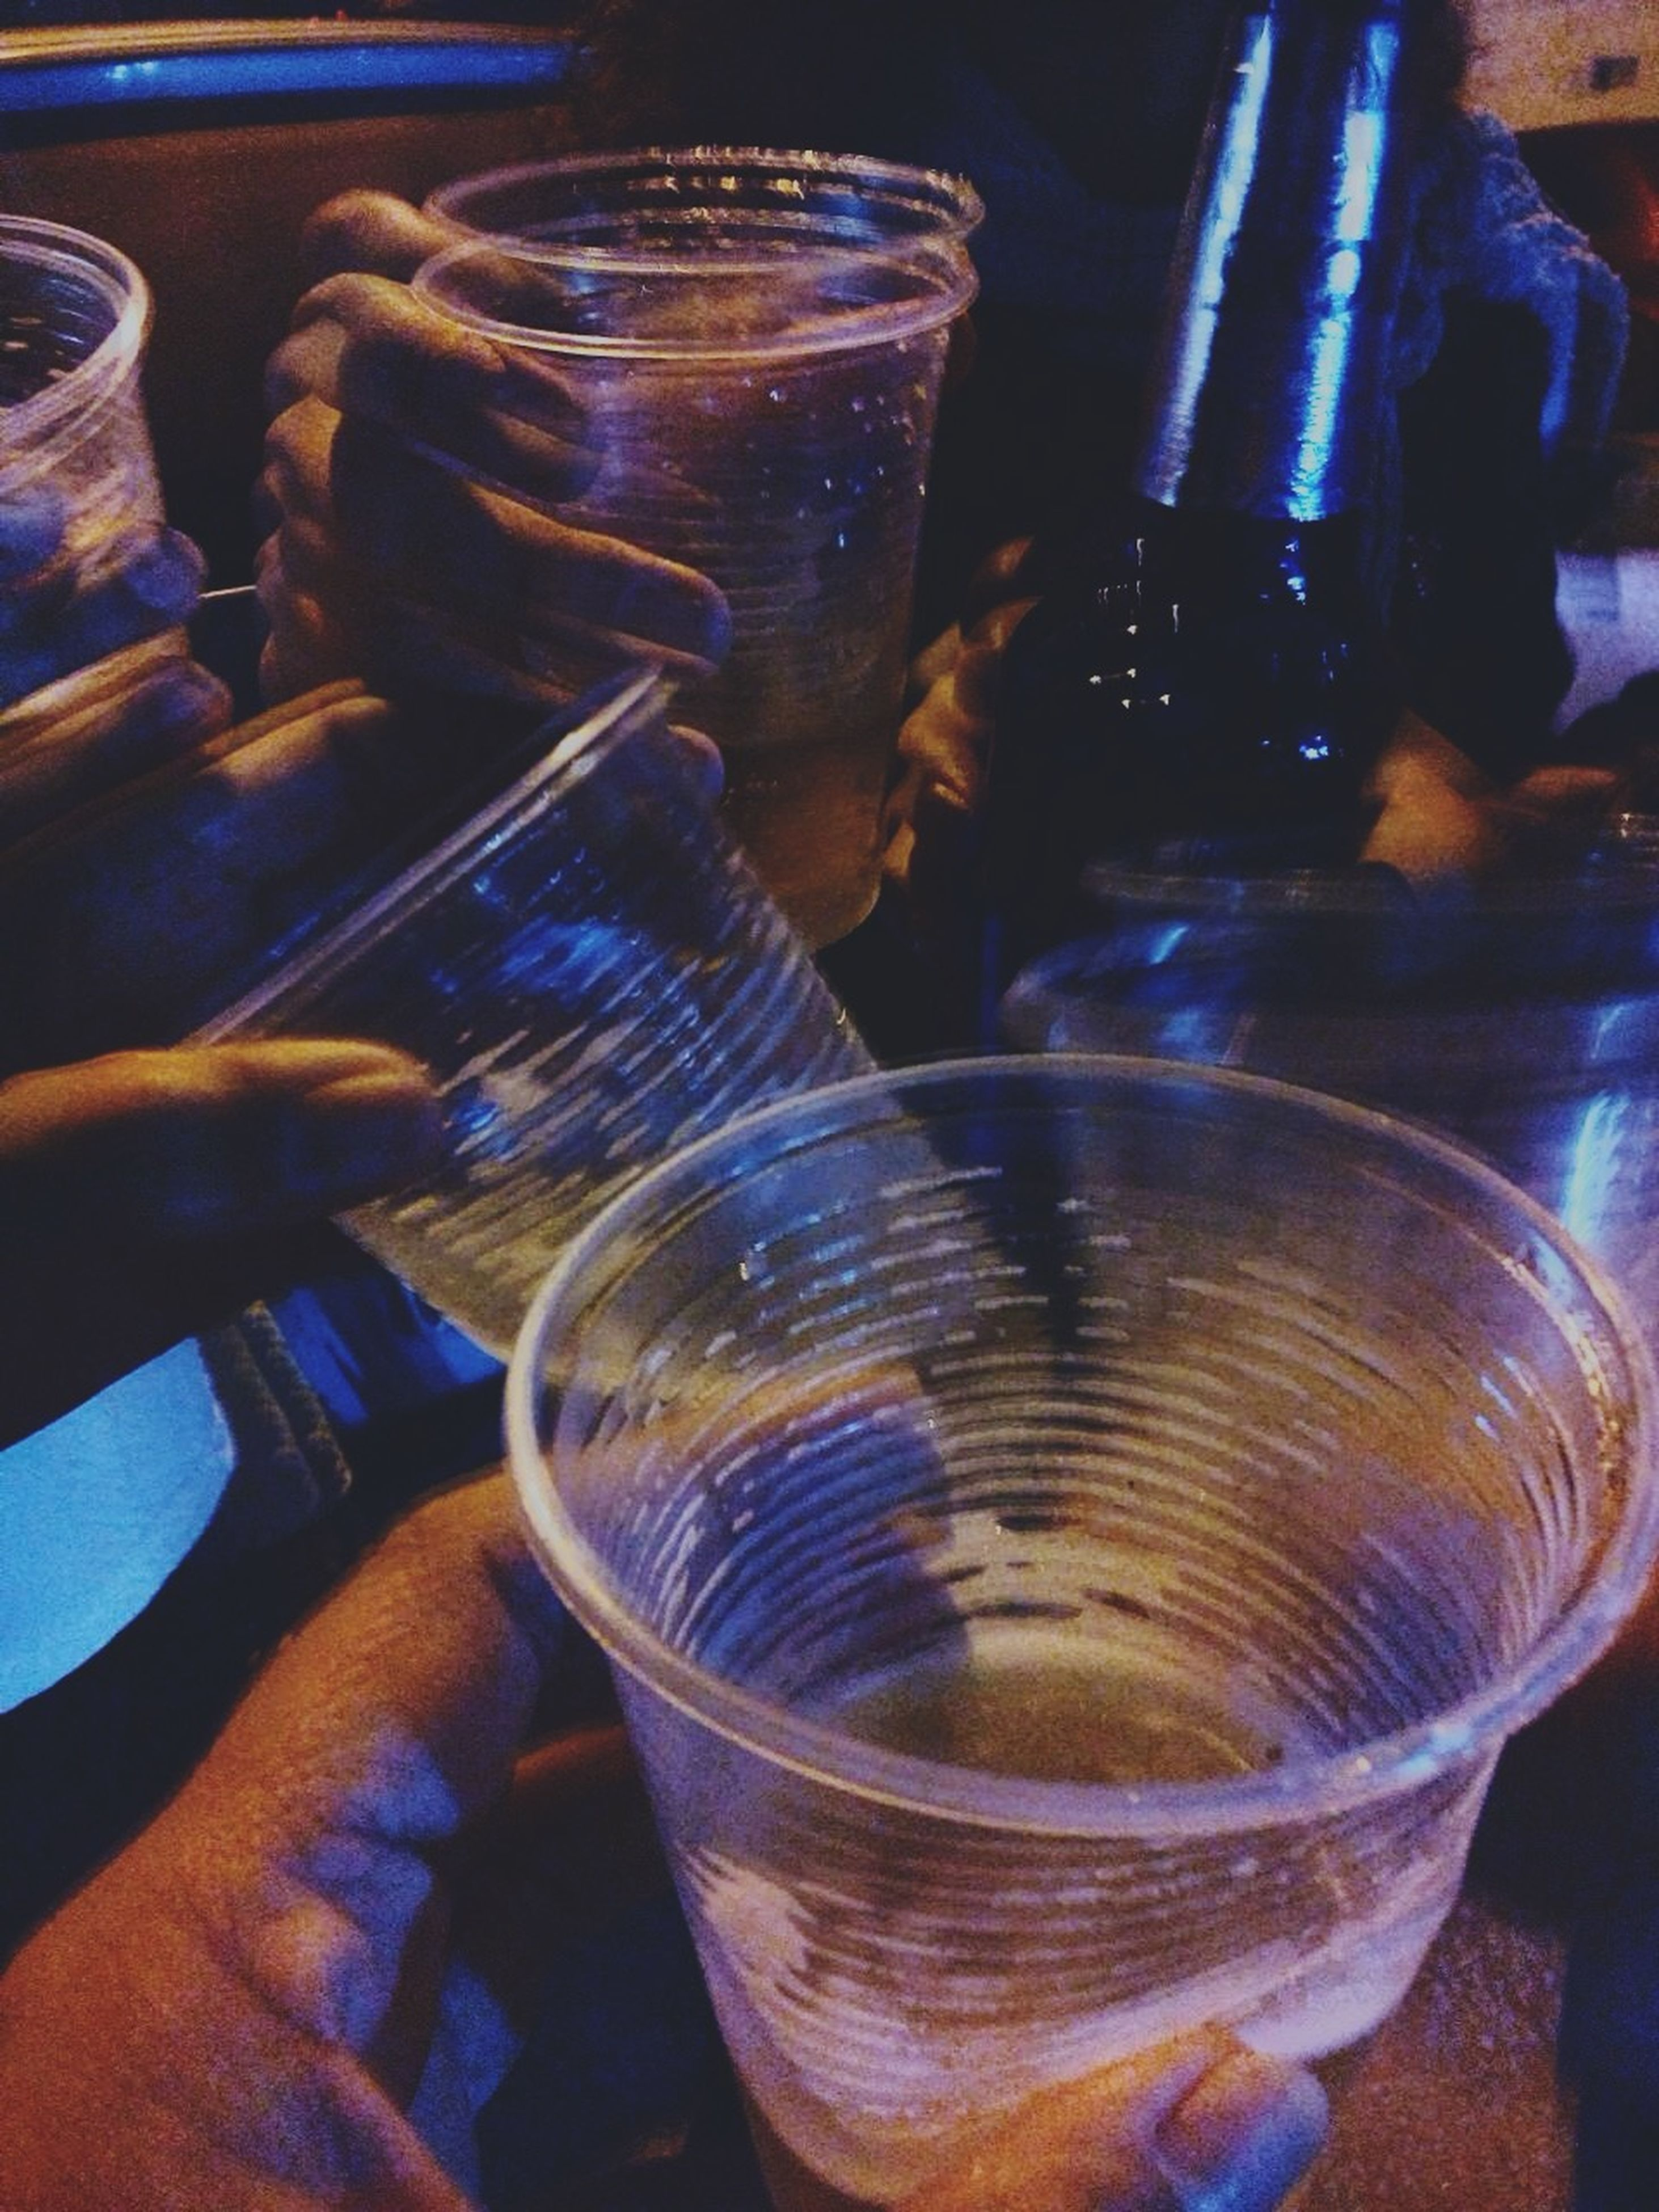 drink, indoors, refreshment, food and drink, drinking glass, glass - material, close-up, freshness, table, transparent, glass, still life, alcohol, high angle view, bottle, person, part of, unrecognizable person